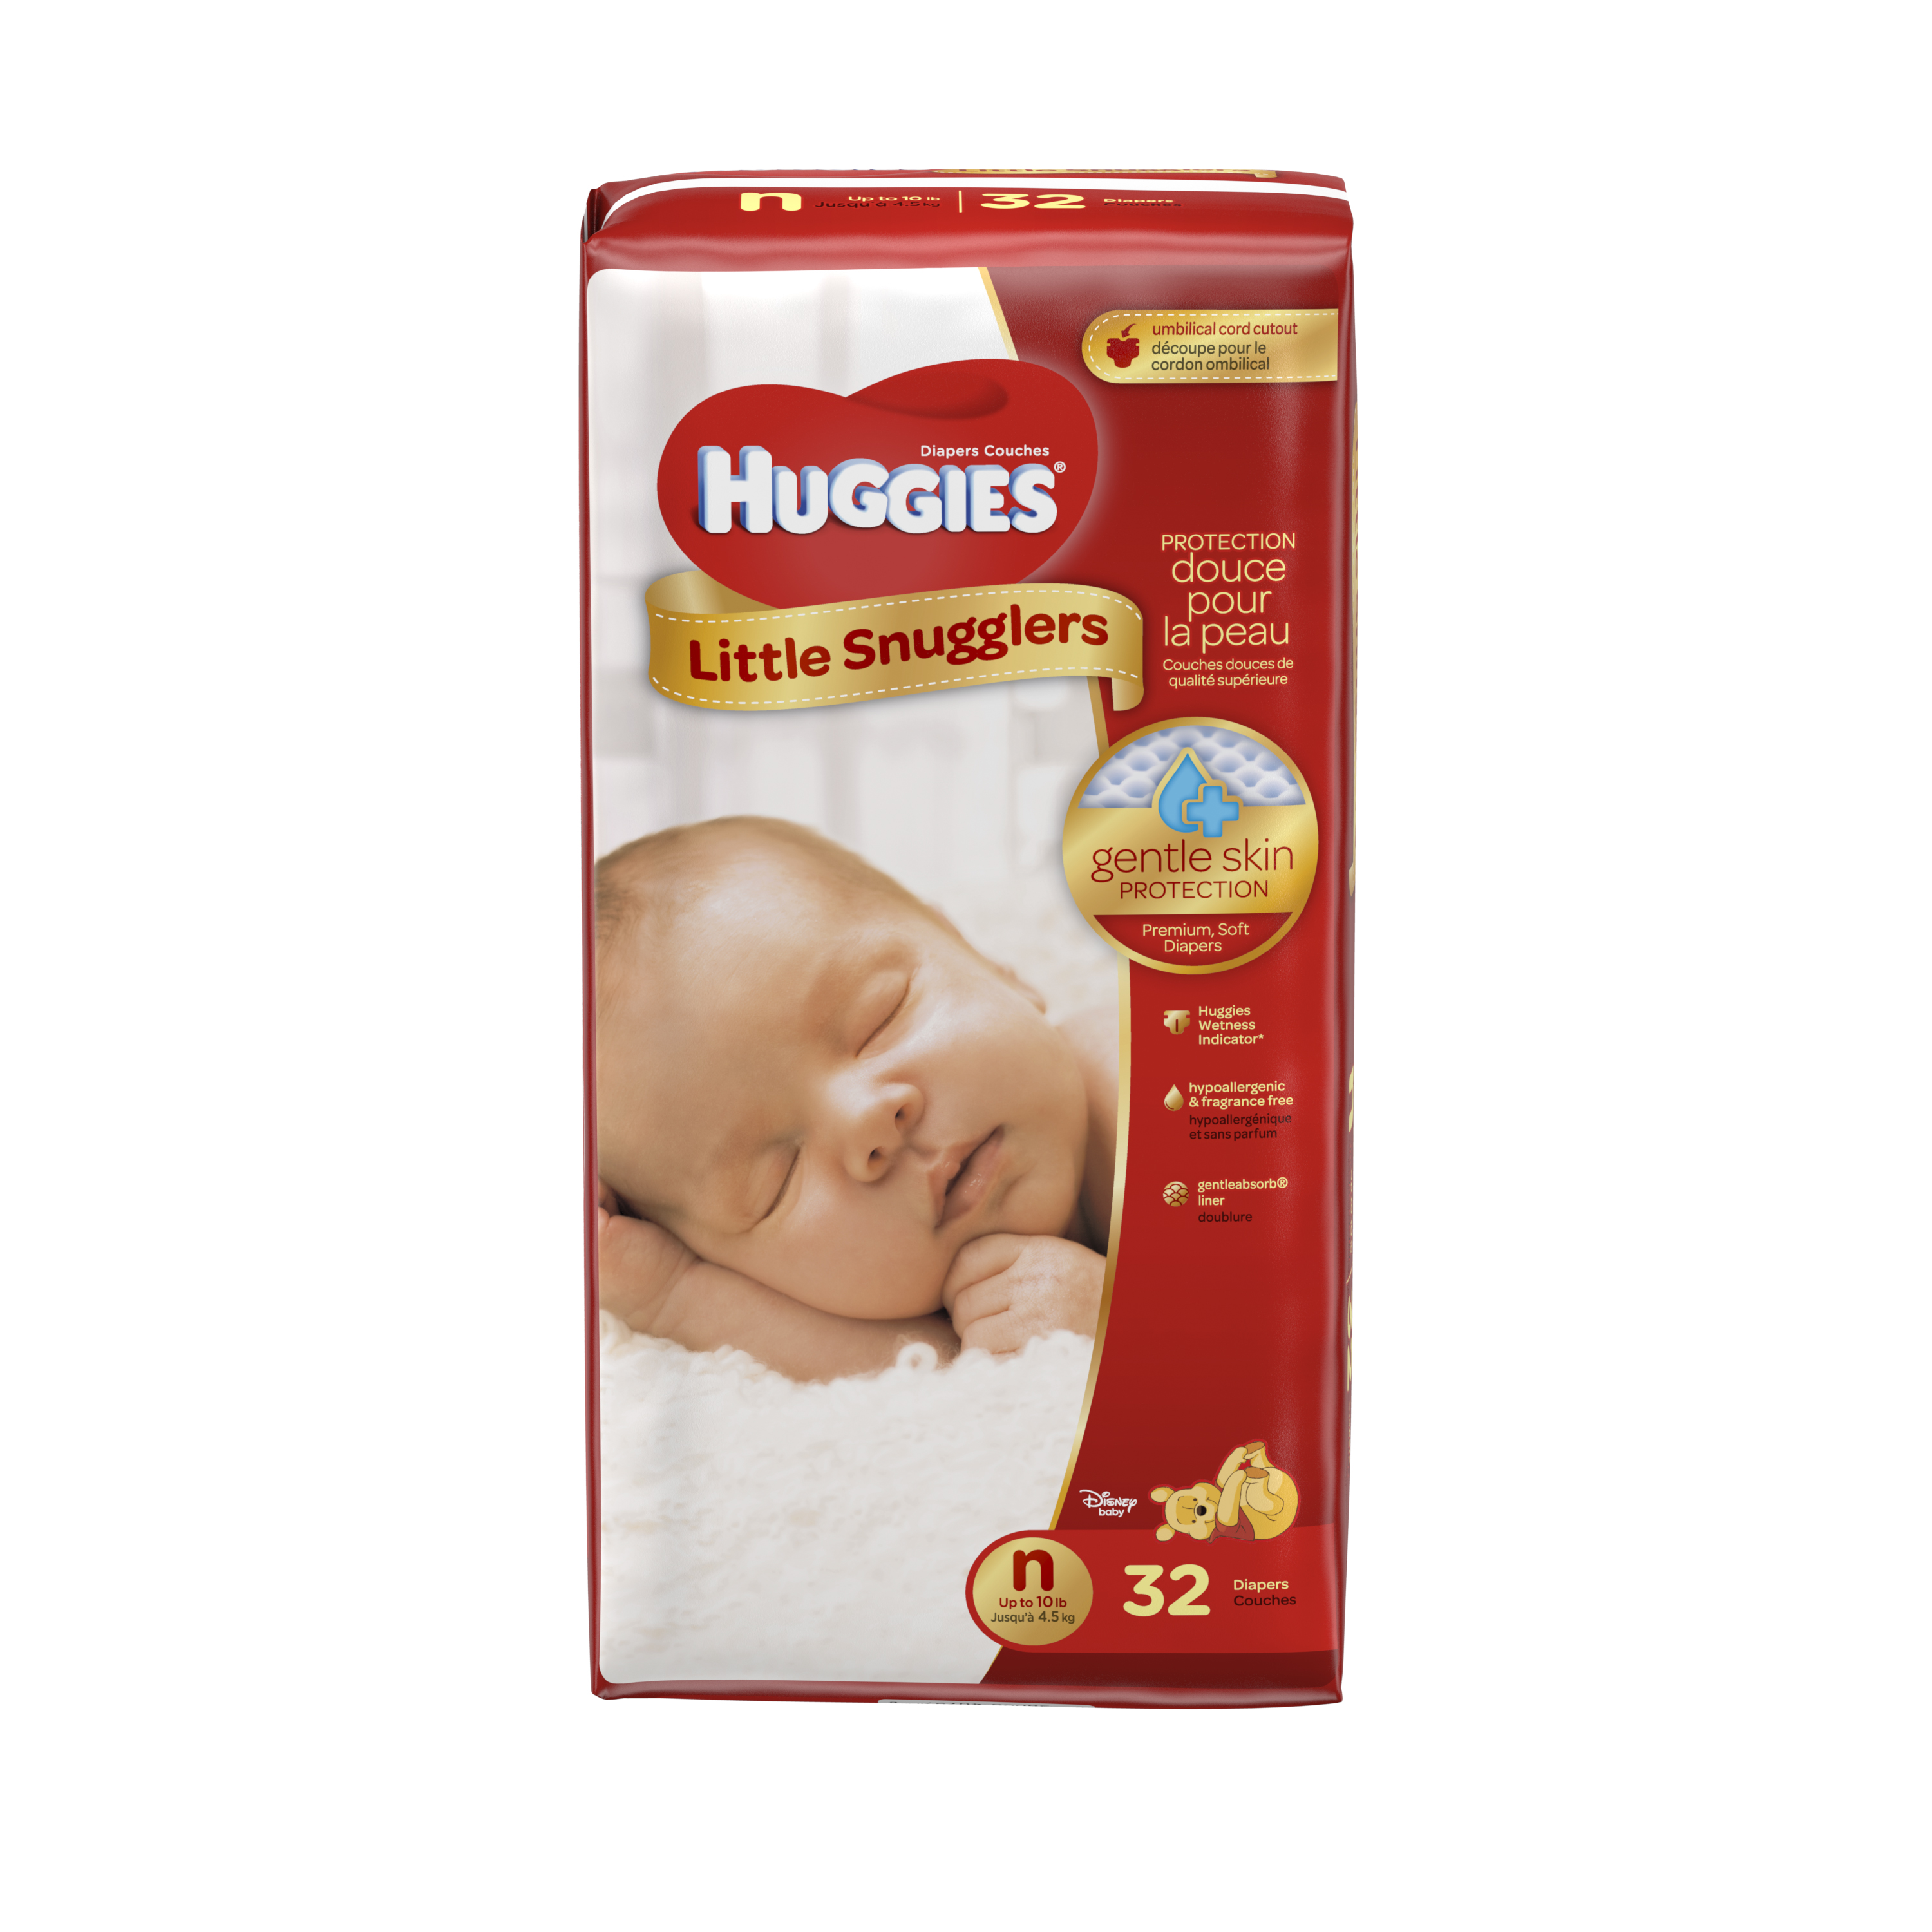 HUGGIES Little Snugglers Diapers, Newborn, 32 Diapers